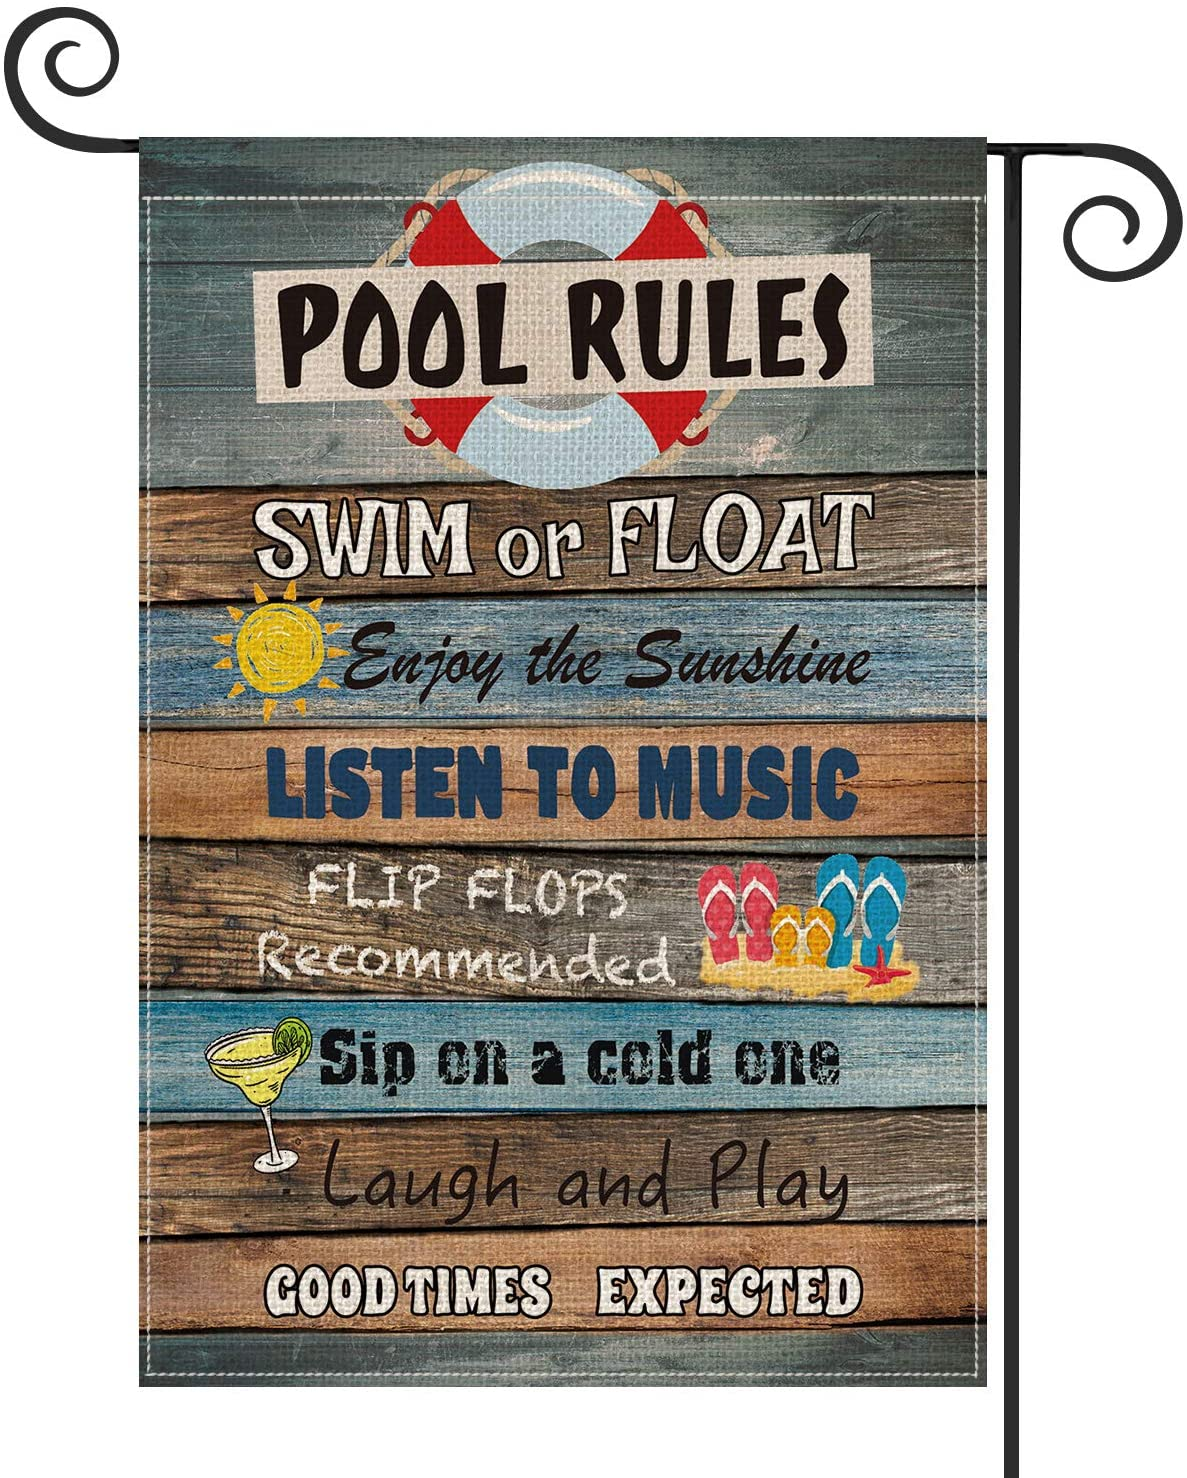 AVOIN Pool Rules Slogan Wood Garden Flag Vertical Double Sized Swim Or Float, Enjoy The Sunshine Yard Outdoor Decoration 12.5 x 18 Inch